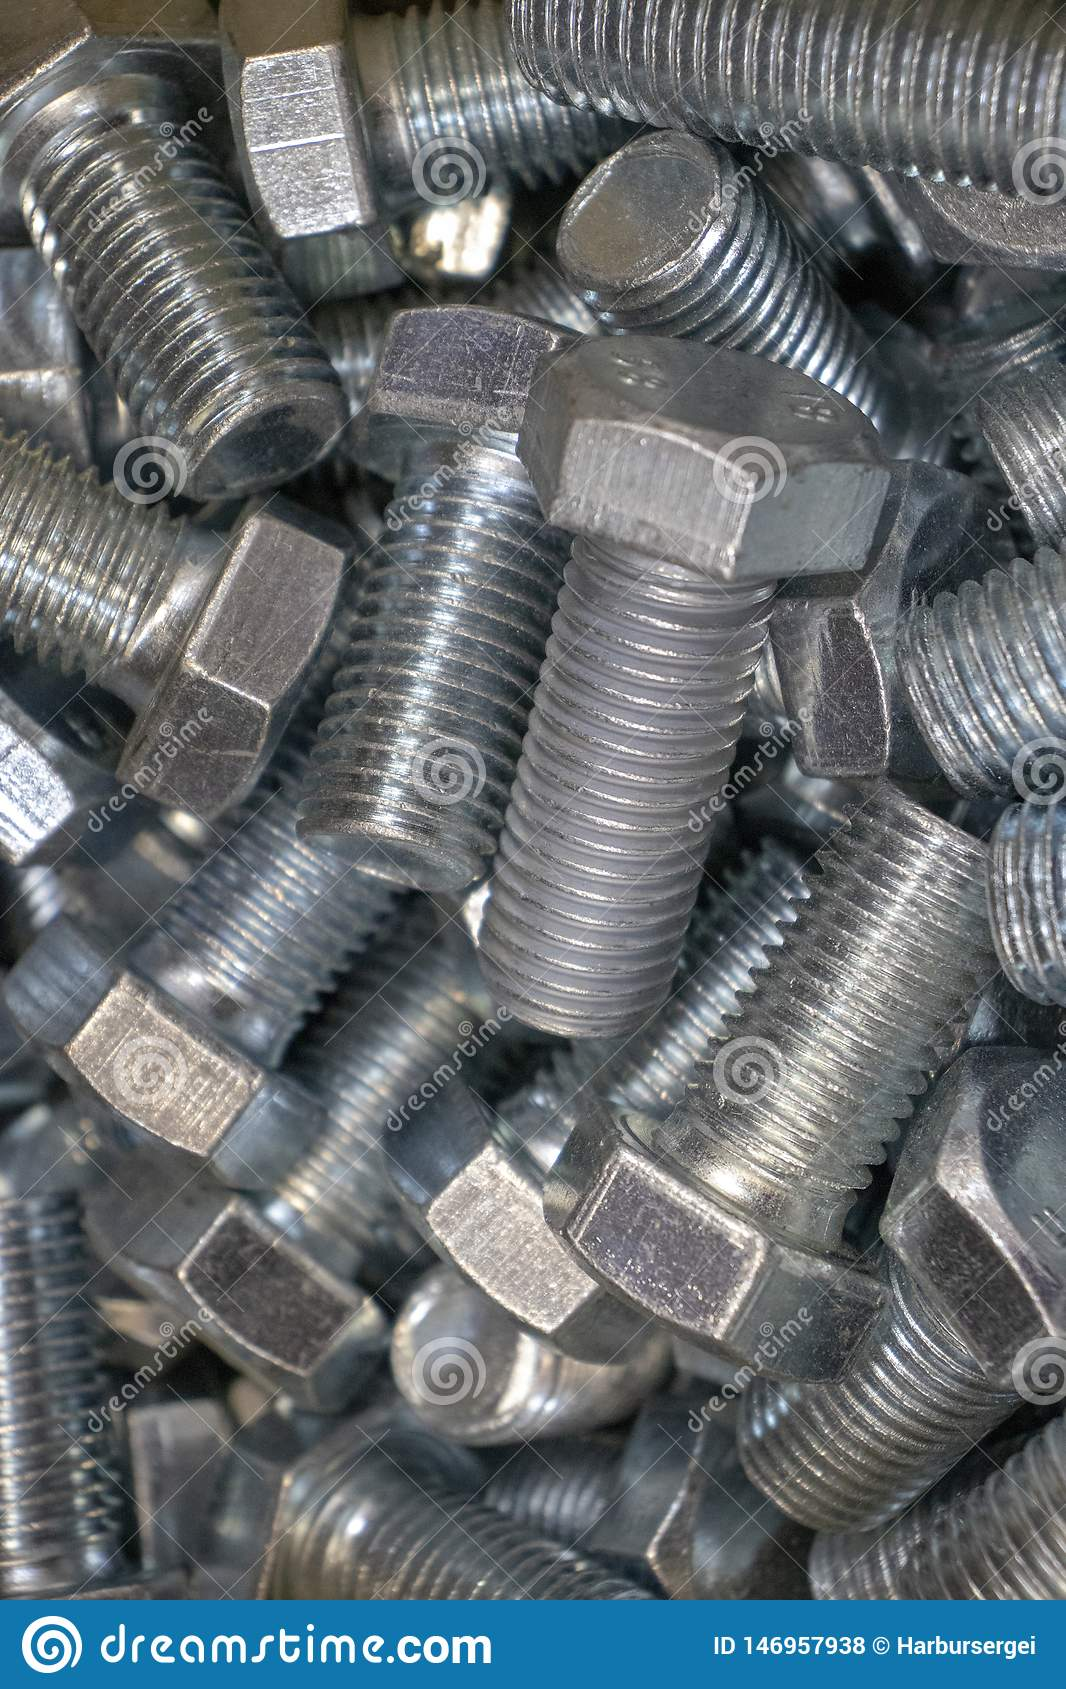 Metal Bolts for connection of iron and wooden parts